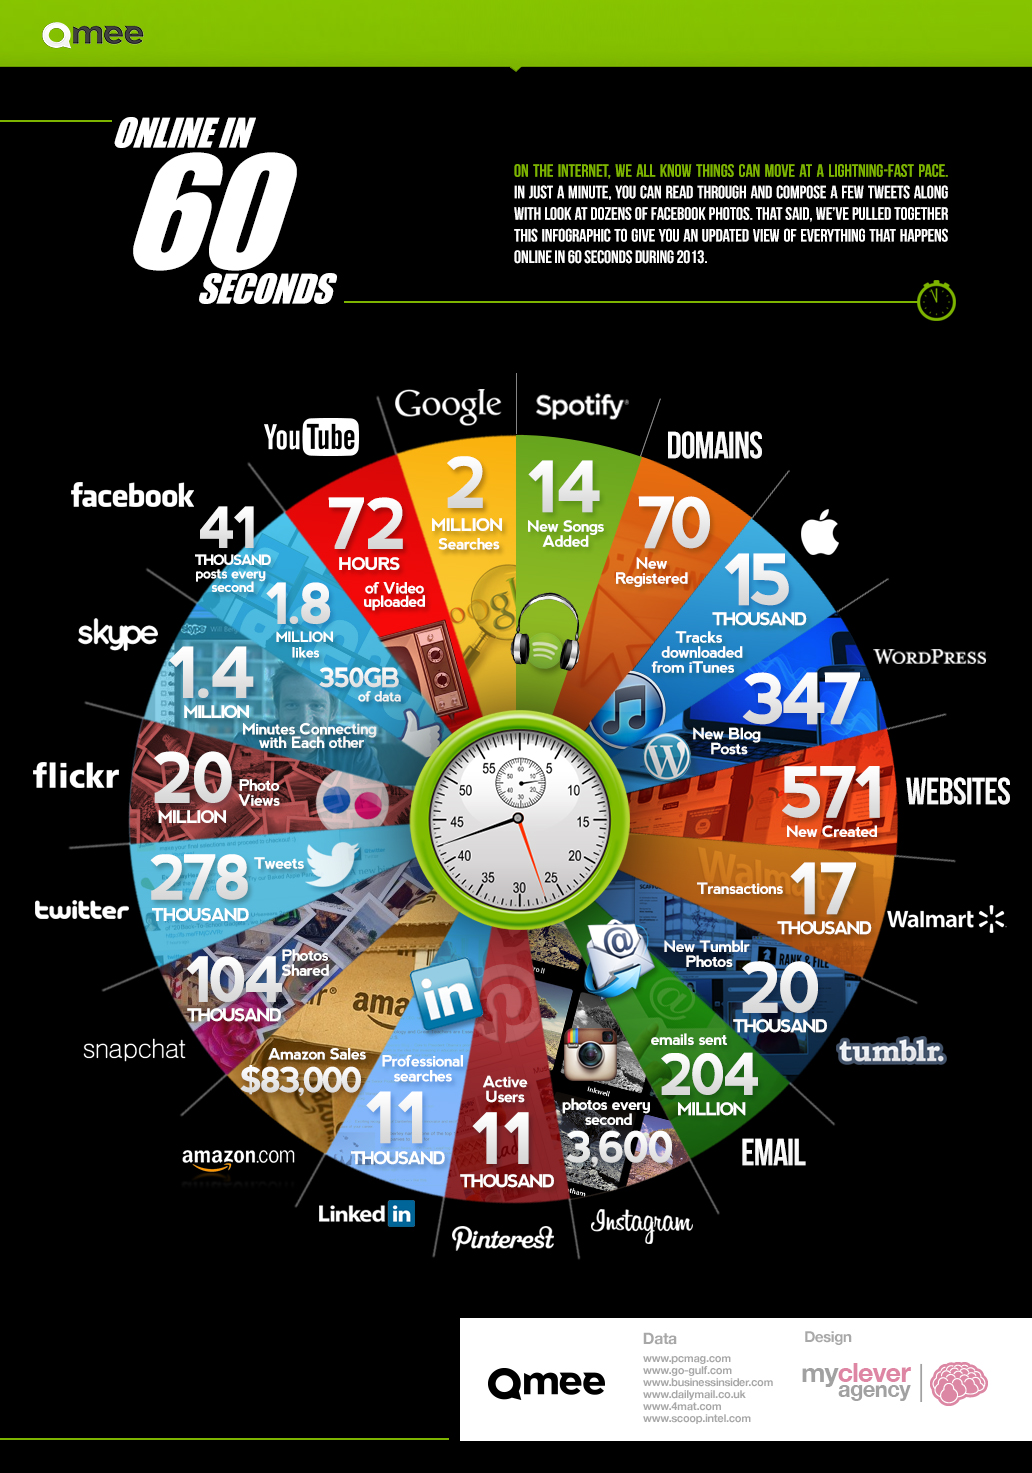 Amazing Content Created Online in 60 Seconds